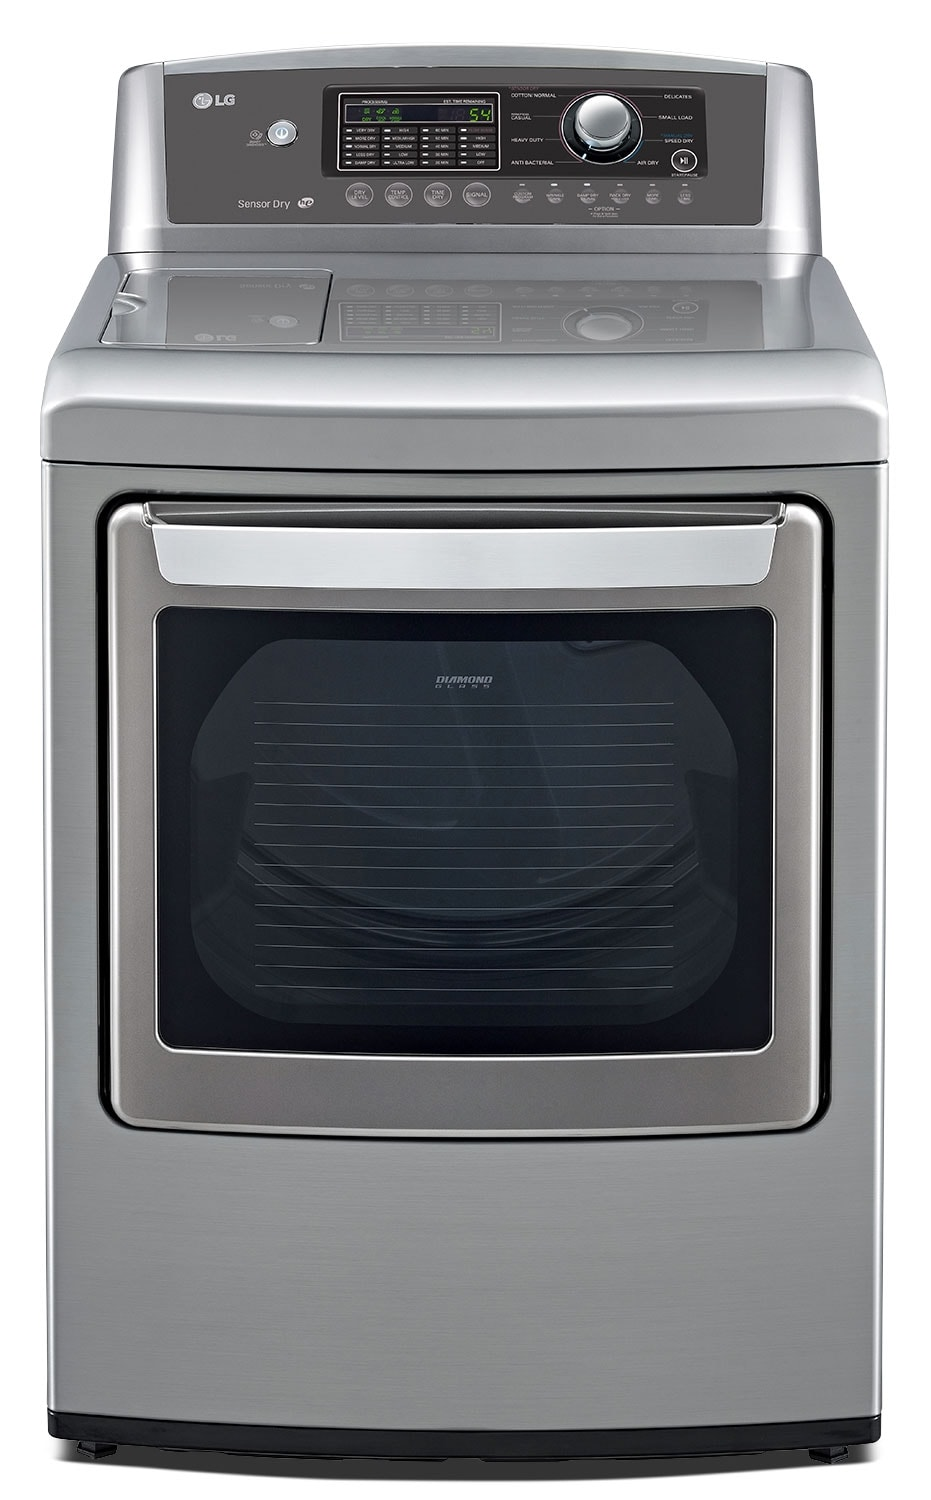 Washers and Dryers - LG 7.3 Cu. Ft. Electric Dryer with Sensor Dry and SmartDiagnosis™ - Graphite Steel